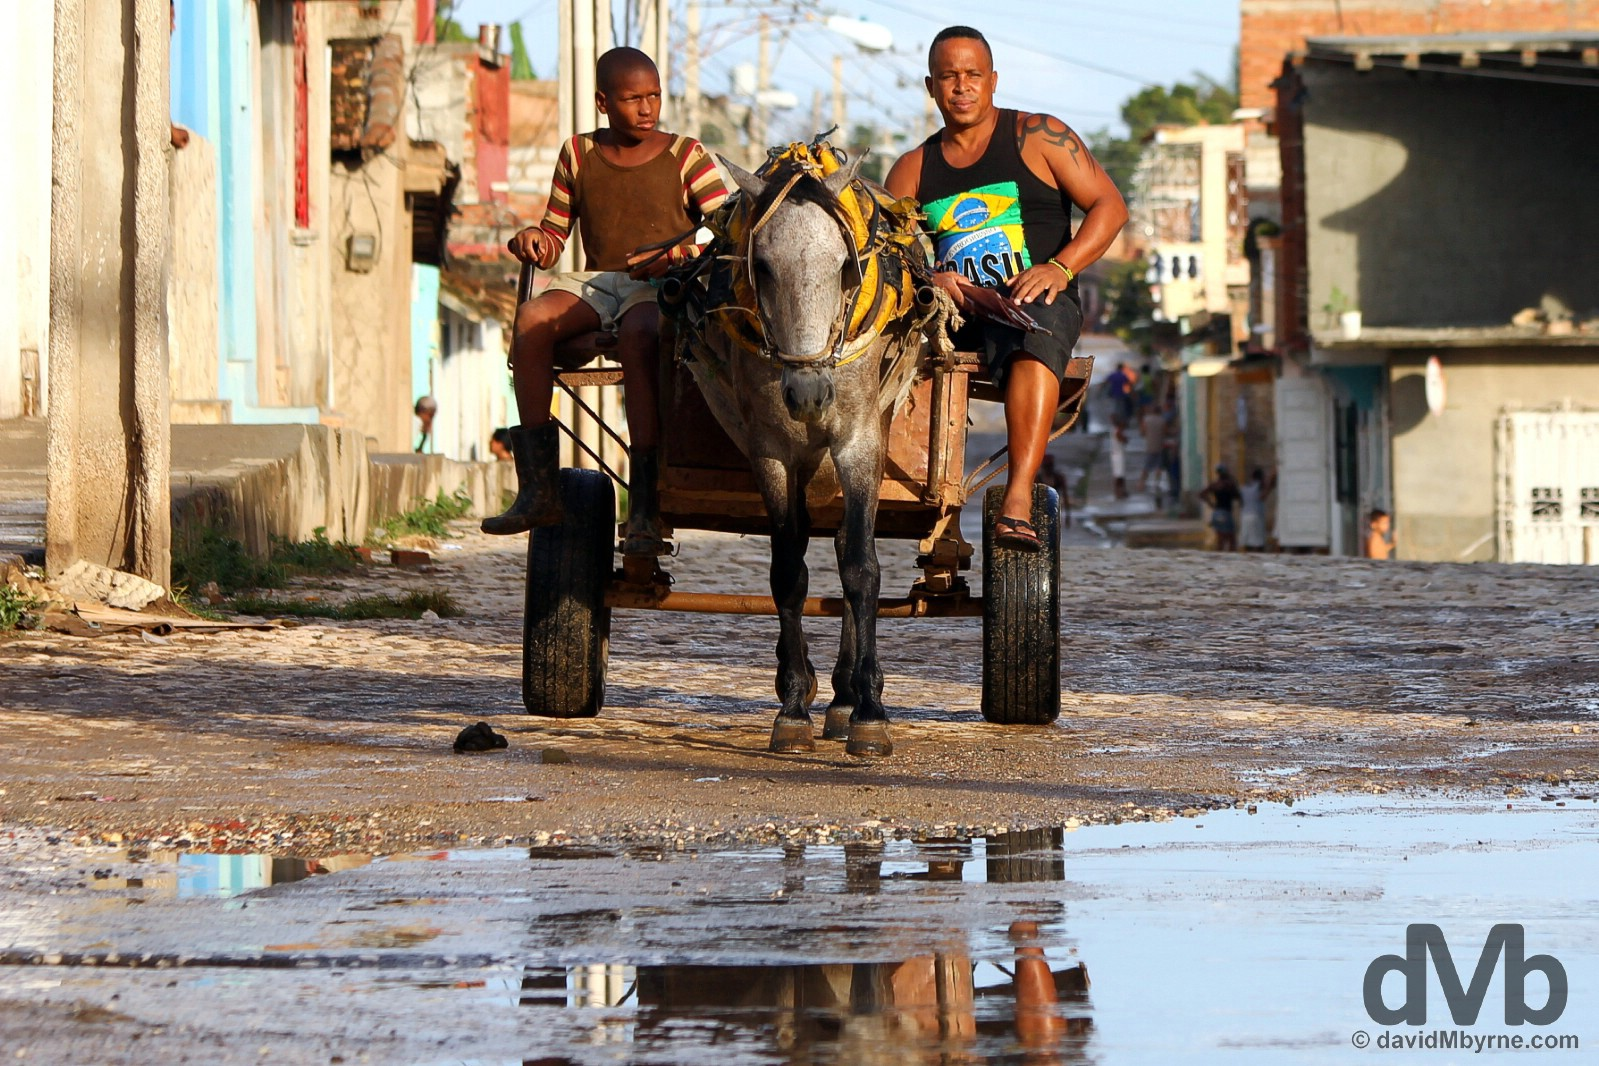 On the streets of Trinidad, Cuba. May 5, 2015.